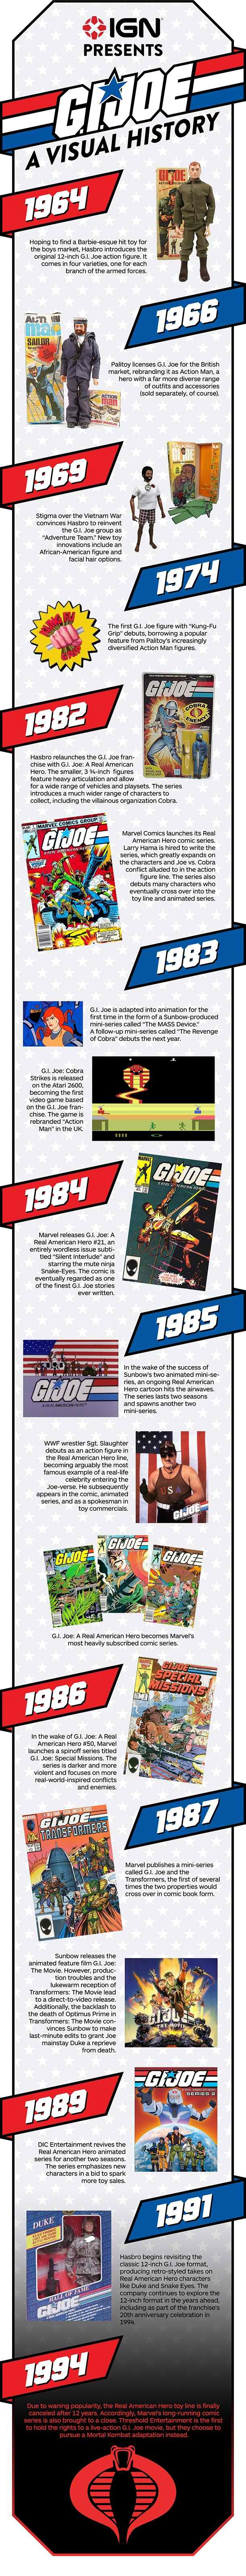 GI Joe A Visual History (1964-1994)